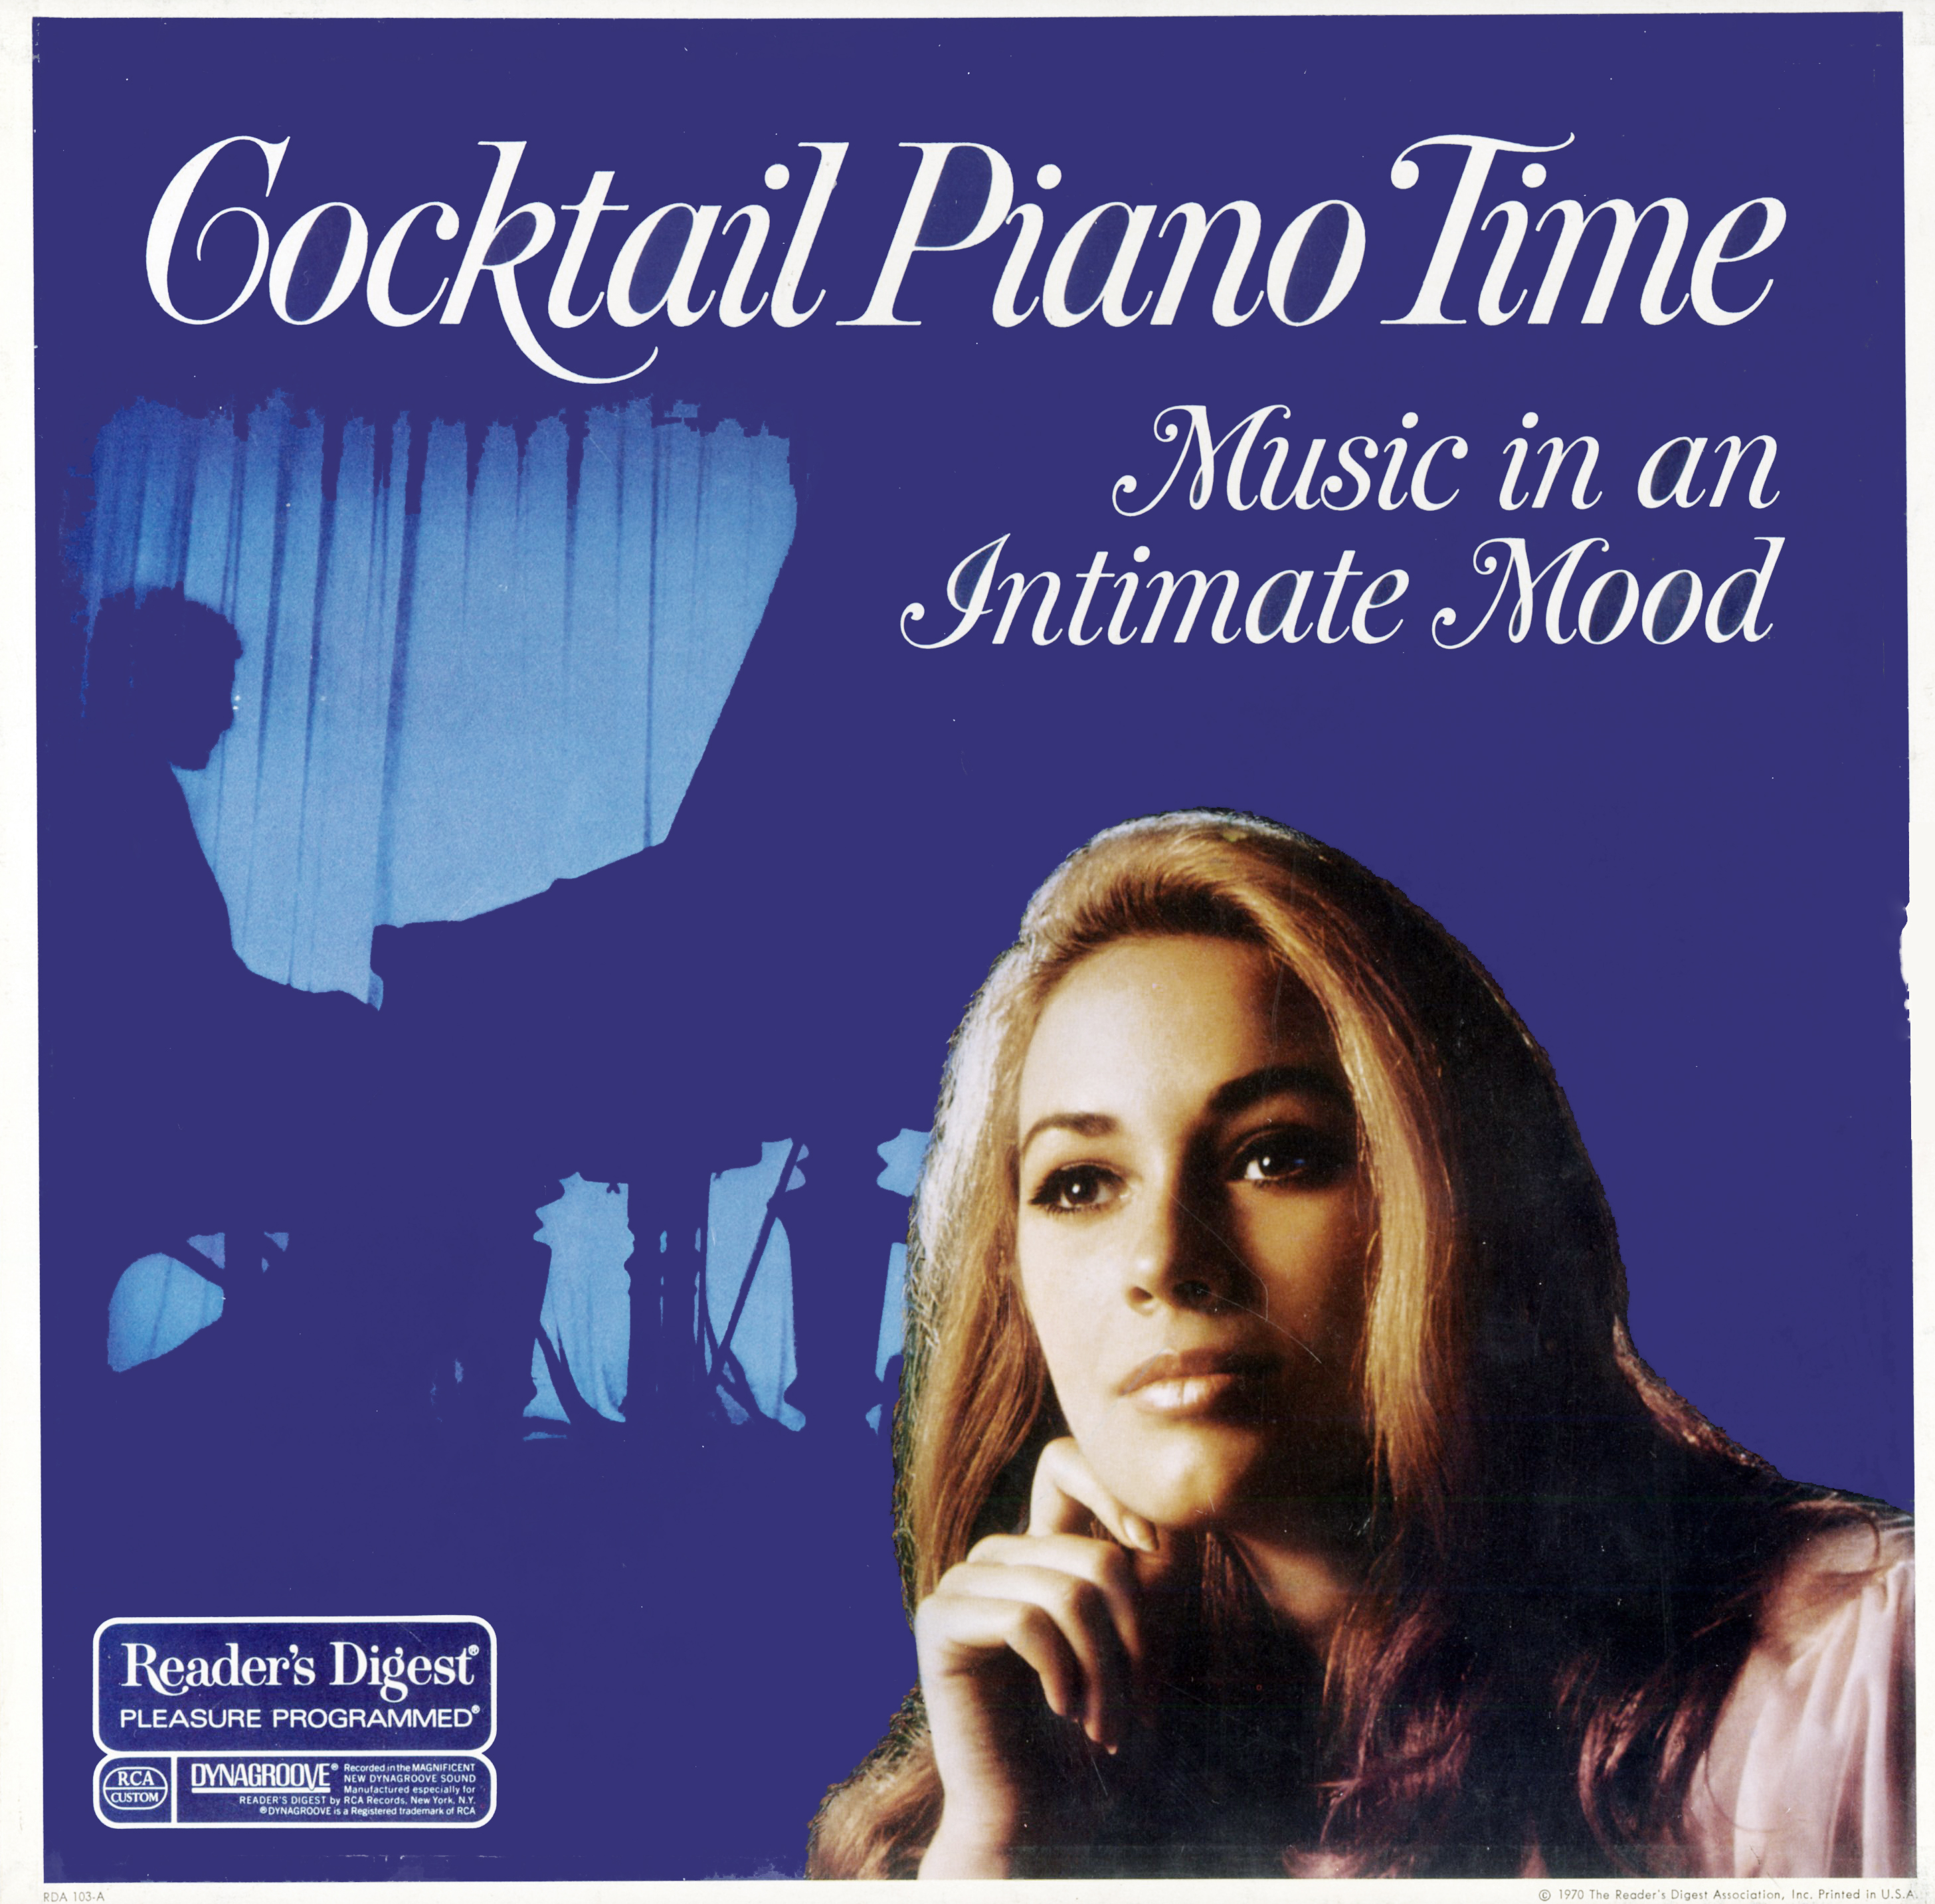 RDA103 - Cocktail Piano Time - Music in an Intimate Mood